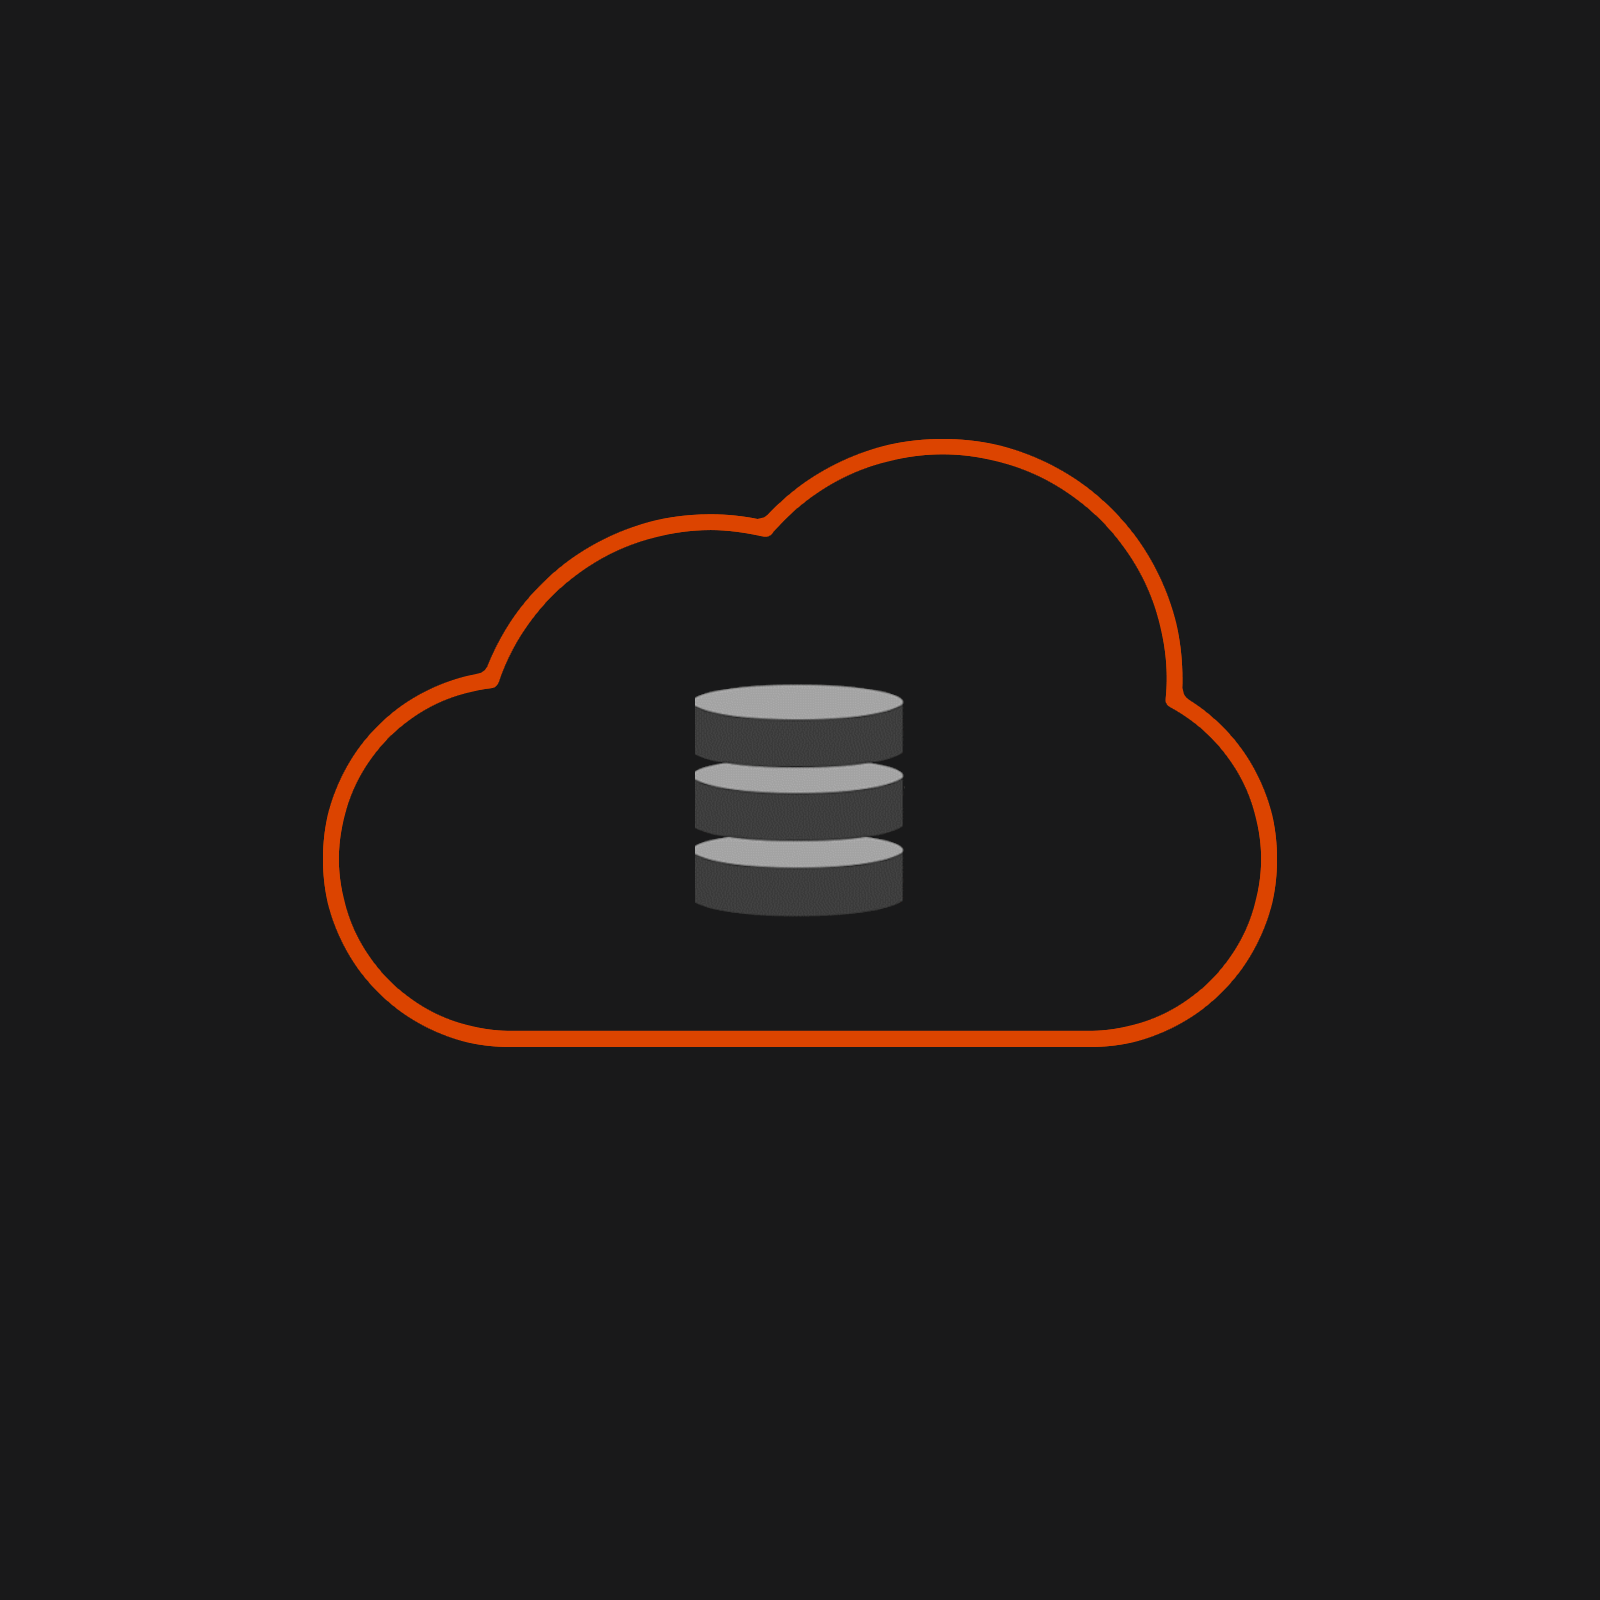 Self-hosted or Fully Managed Cloud Hosting